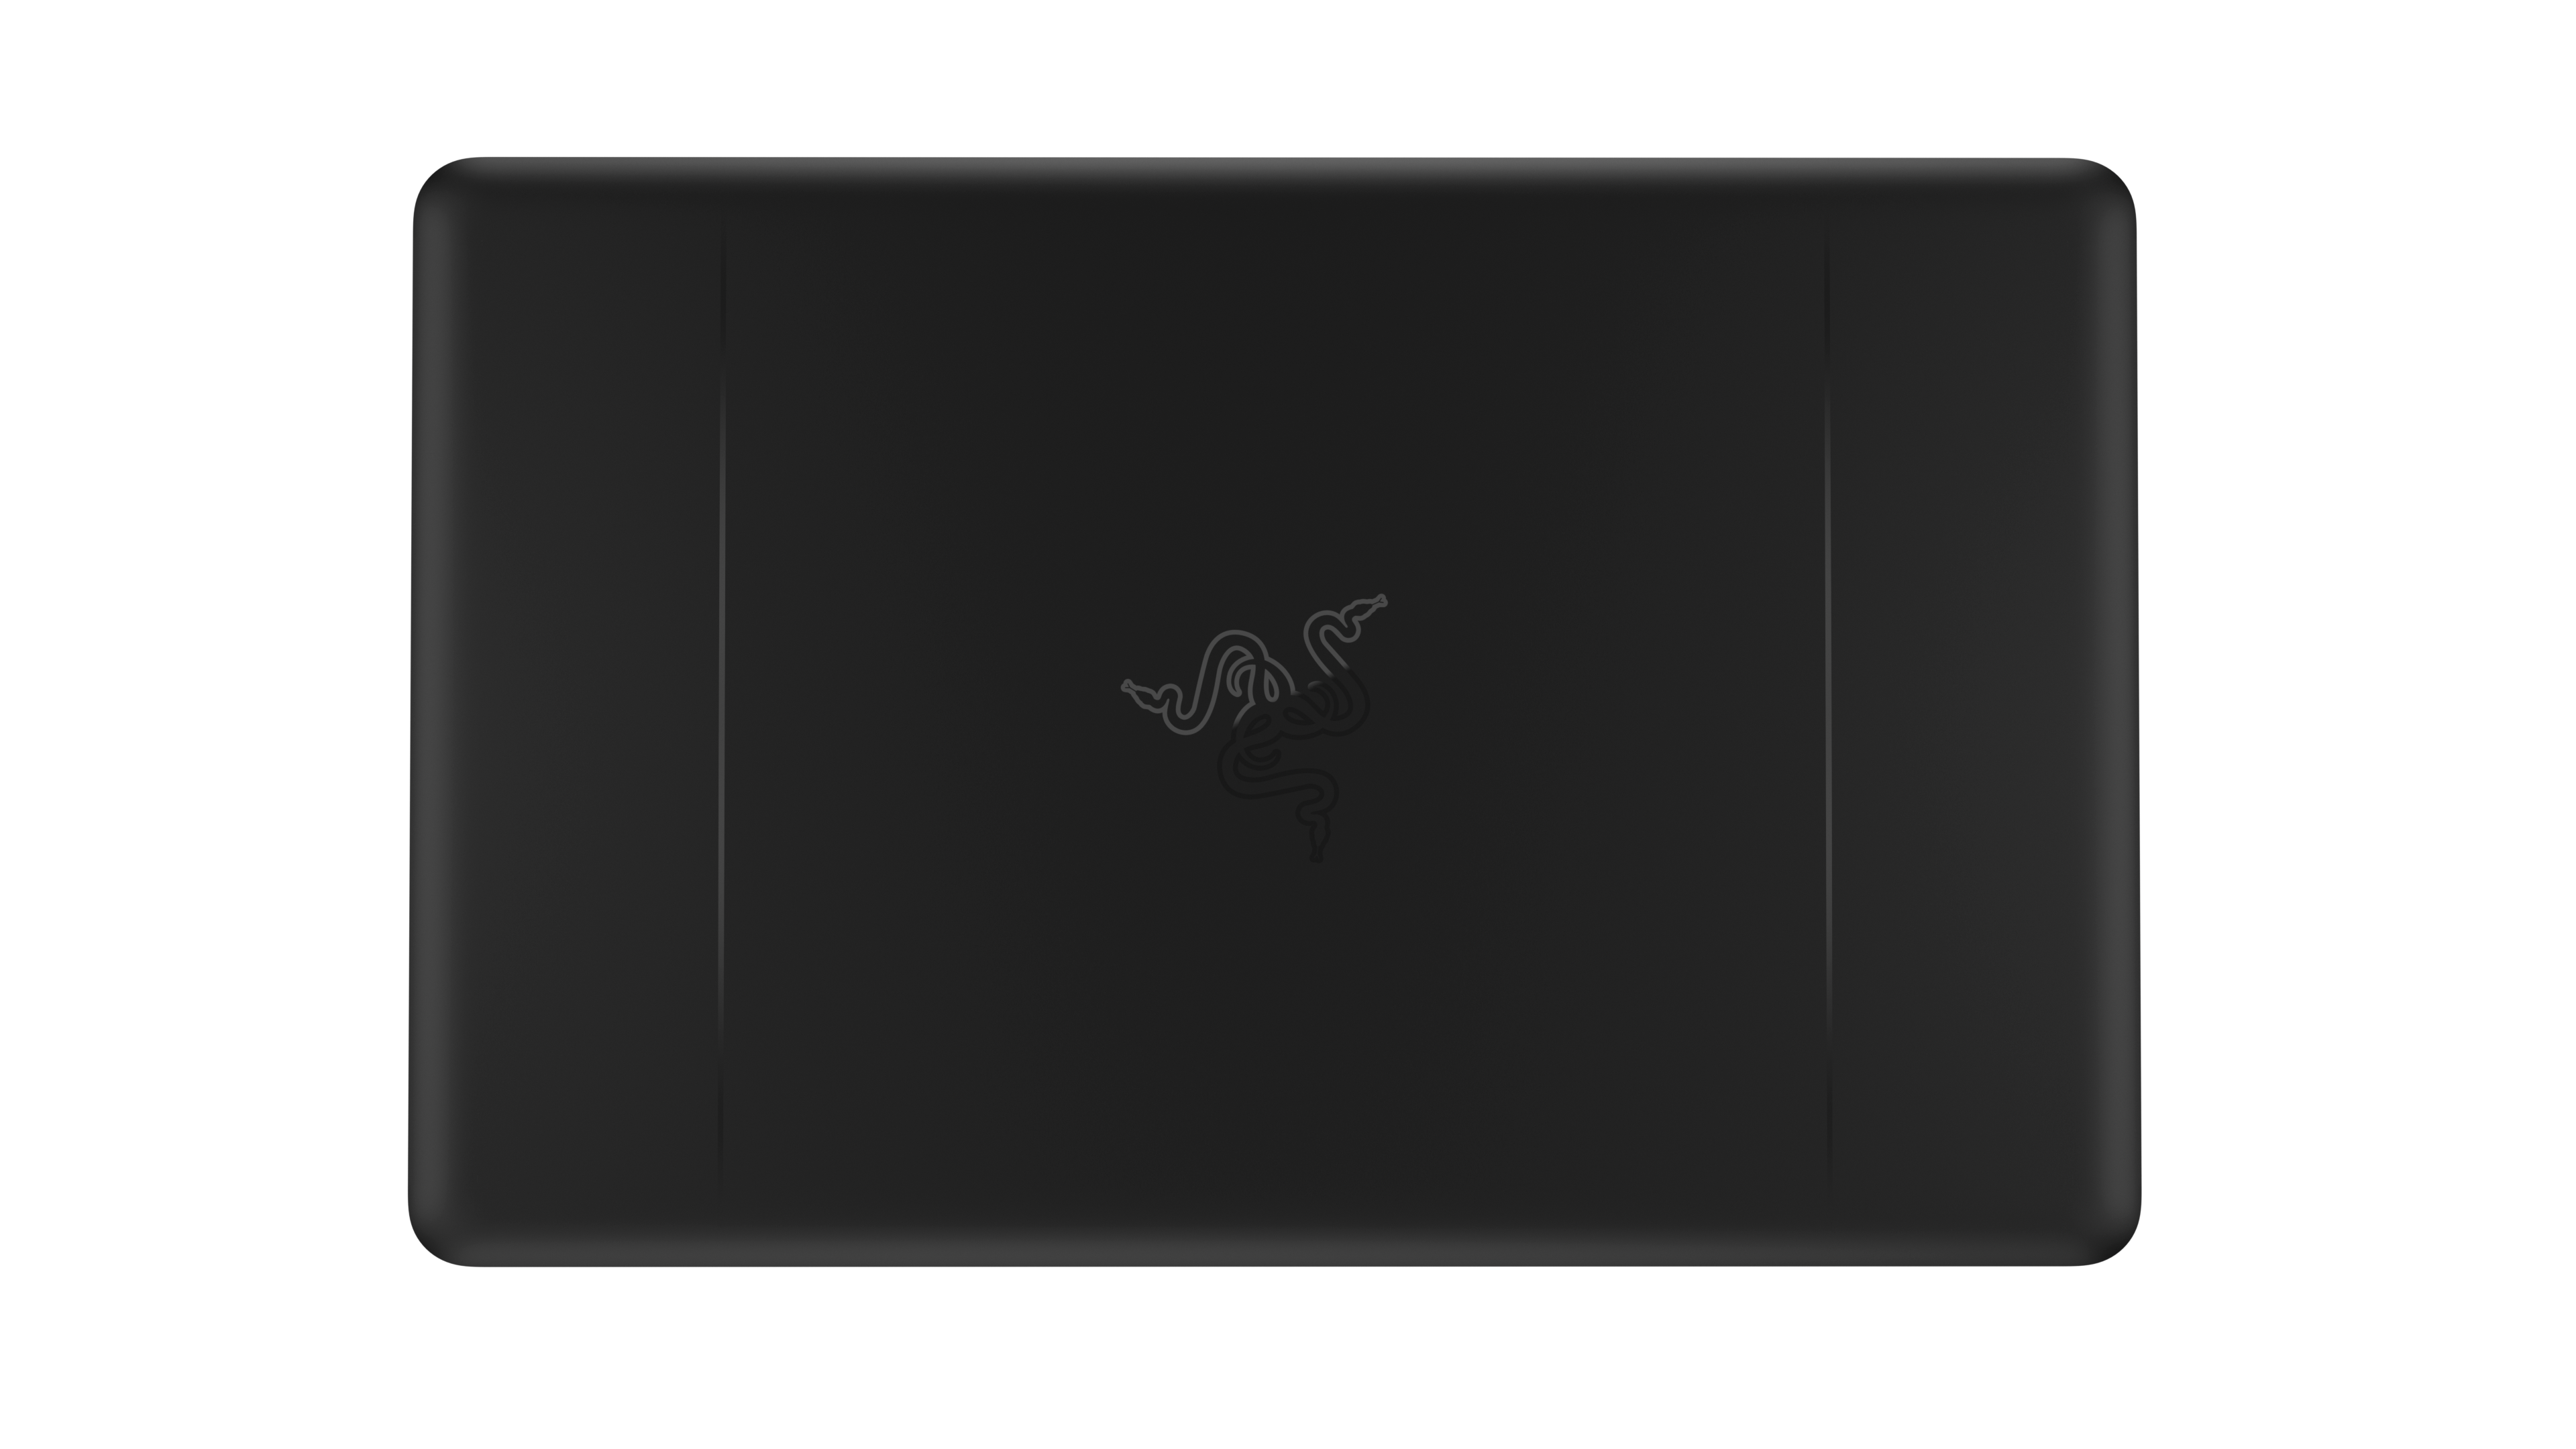 Razer_Blade_Stealth_Top_Gunmetal